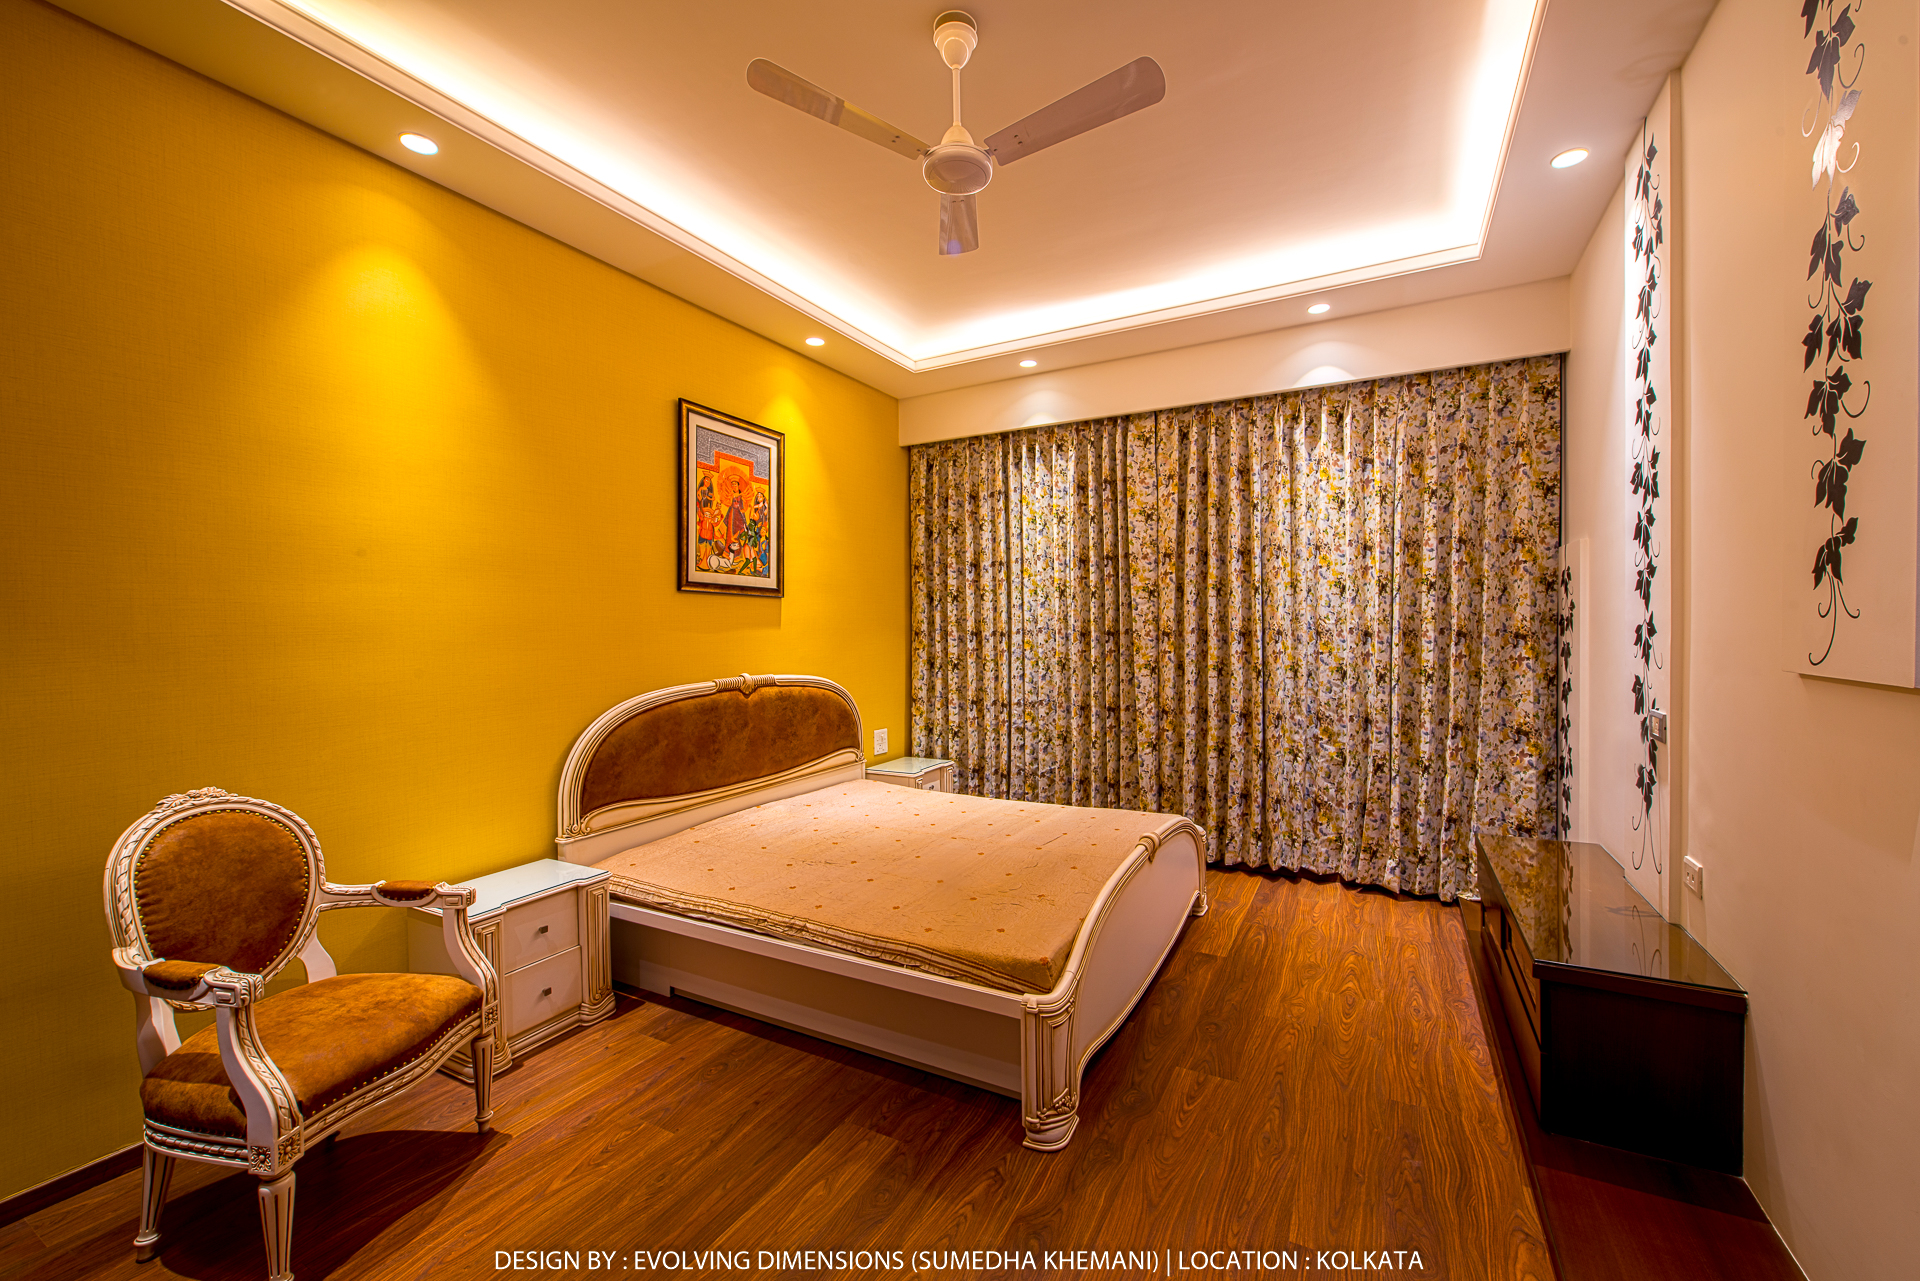 Interior Design Photoshoot Kolkata